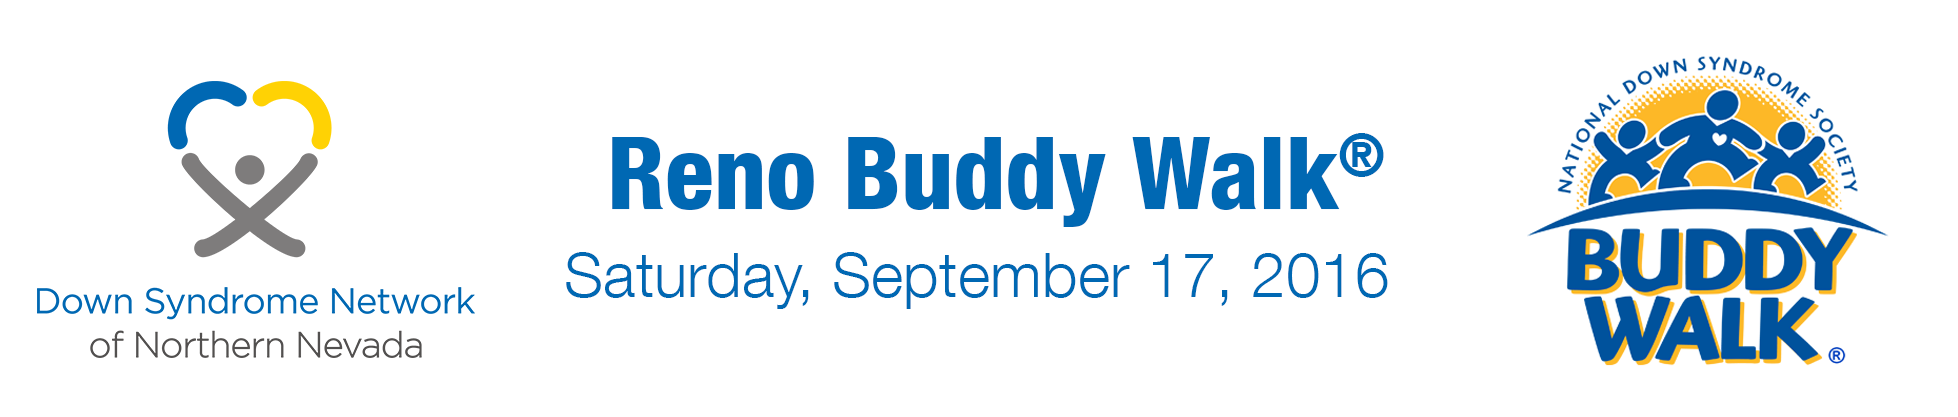 Reno Buddy Walk